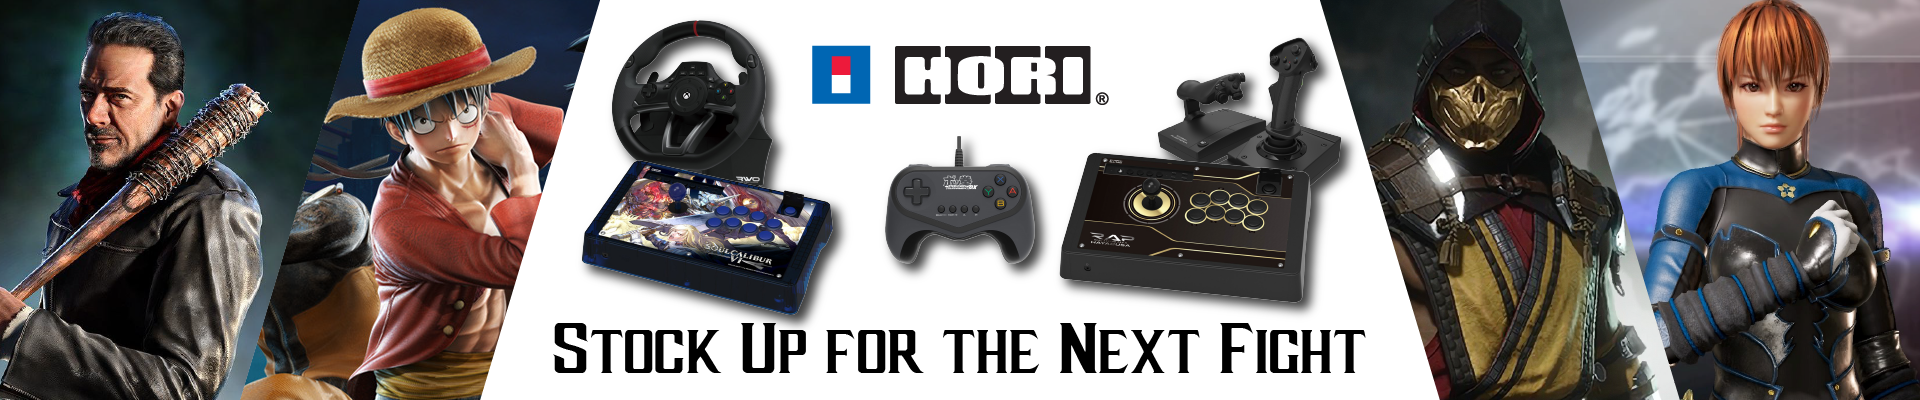 Hori - Stock Up for the Next Fight